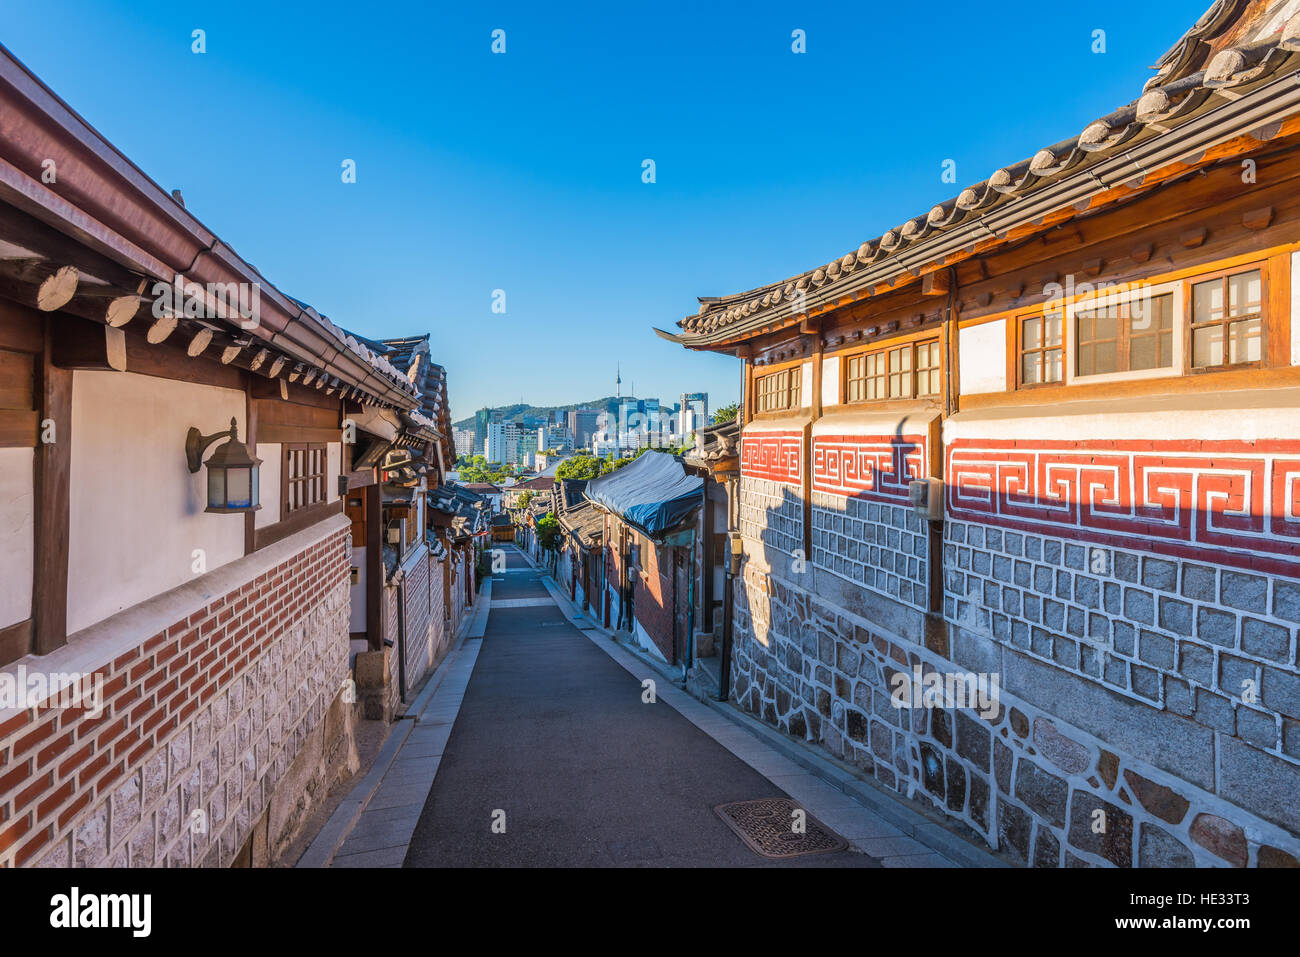 Le village de Bukchon Hanok à Séoul, Corée du Sud. Photo Stock